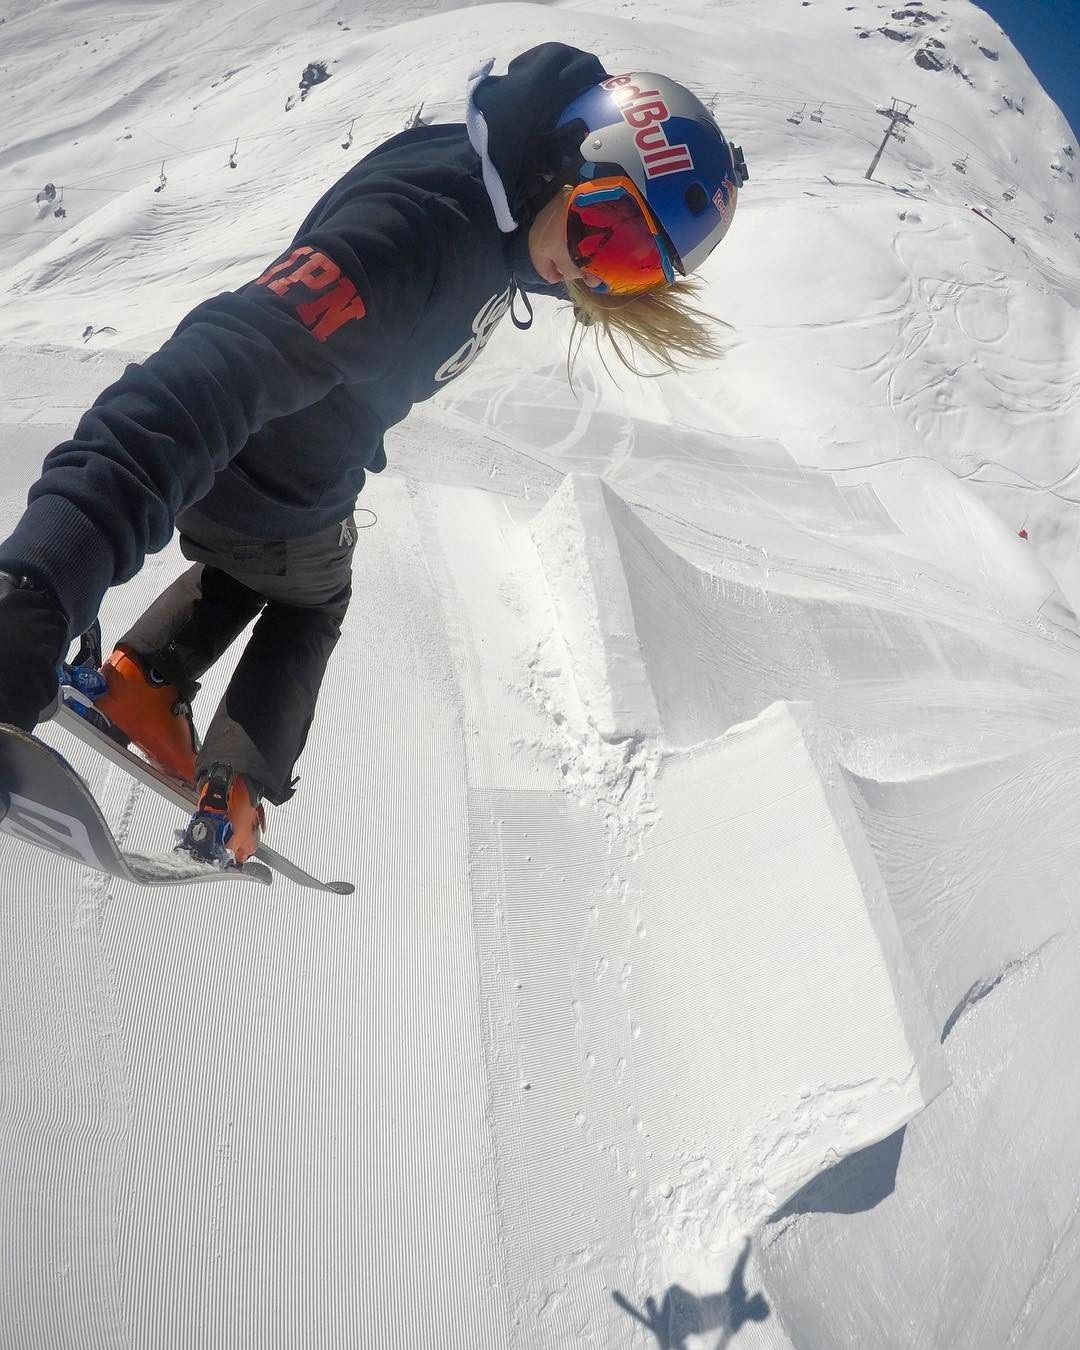 Pin by Girlifornia on Snowboarding (With images) Sports